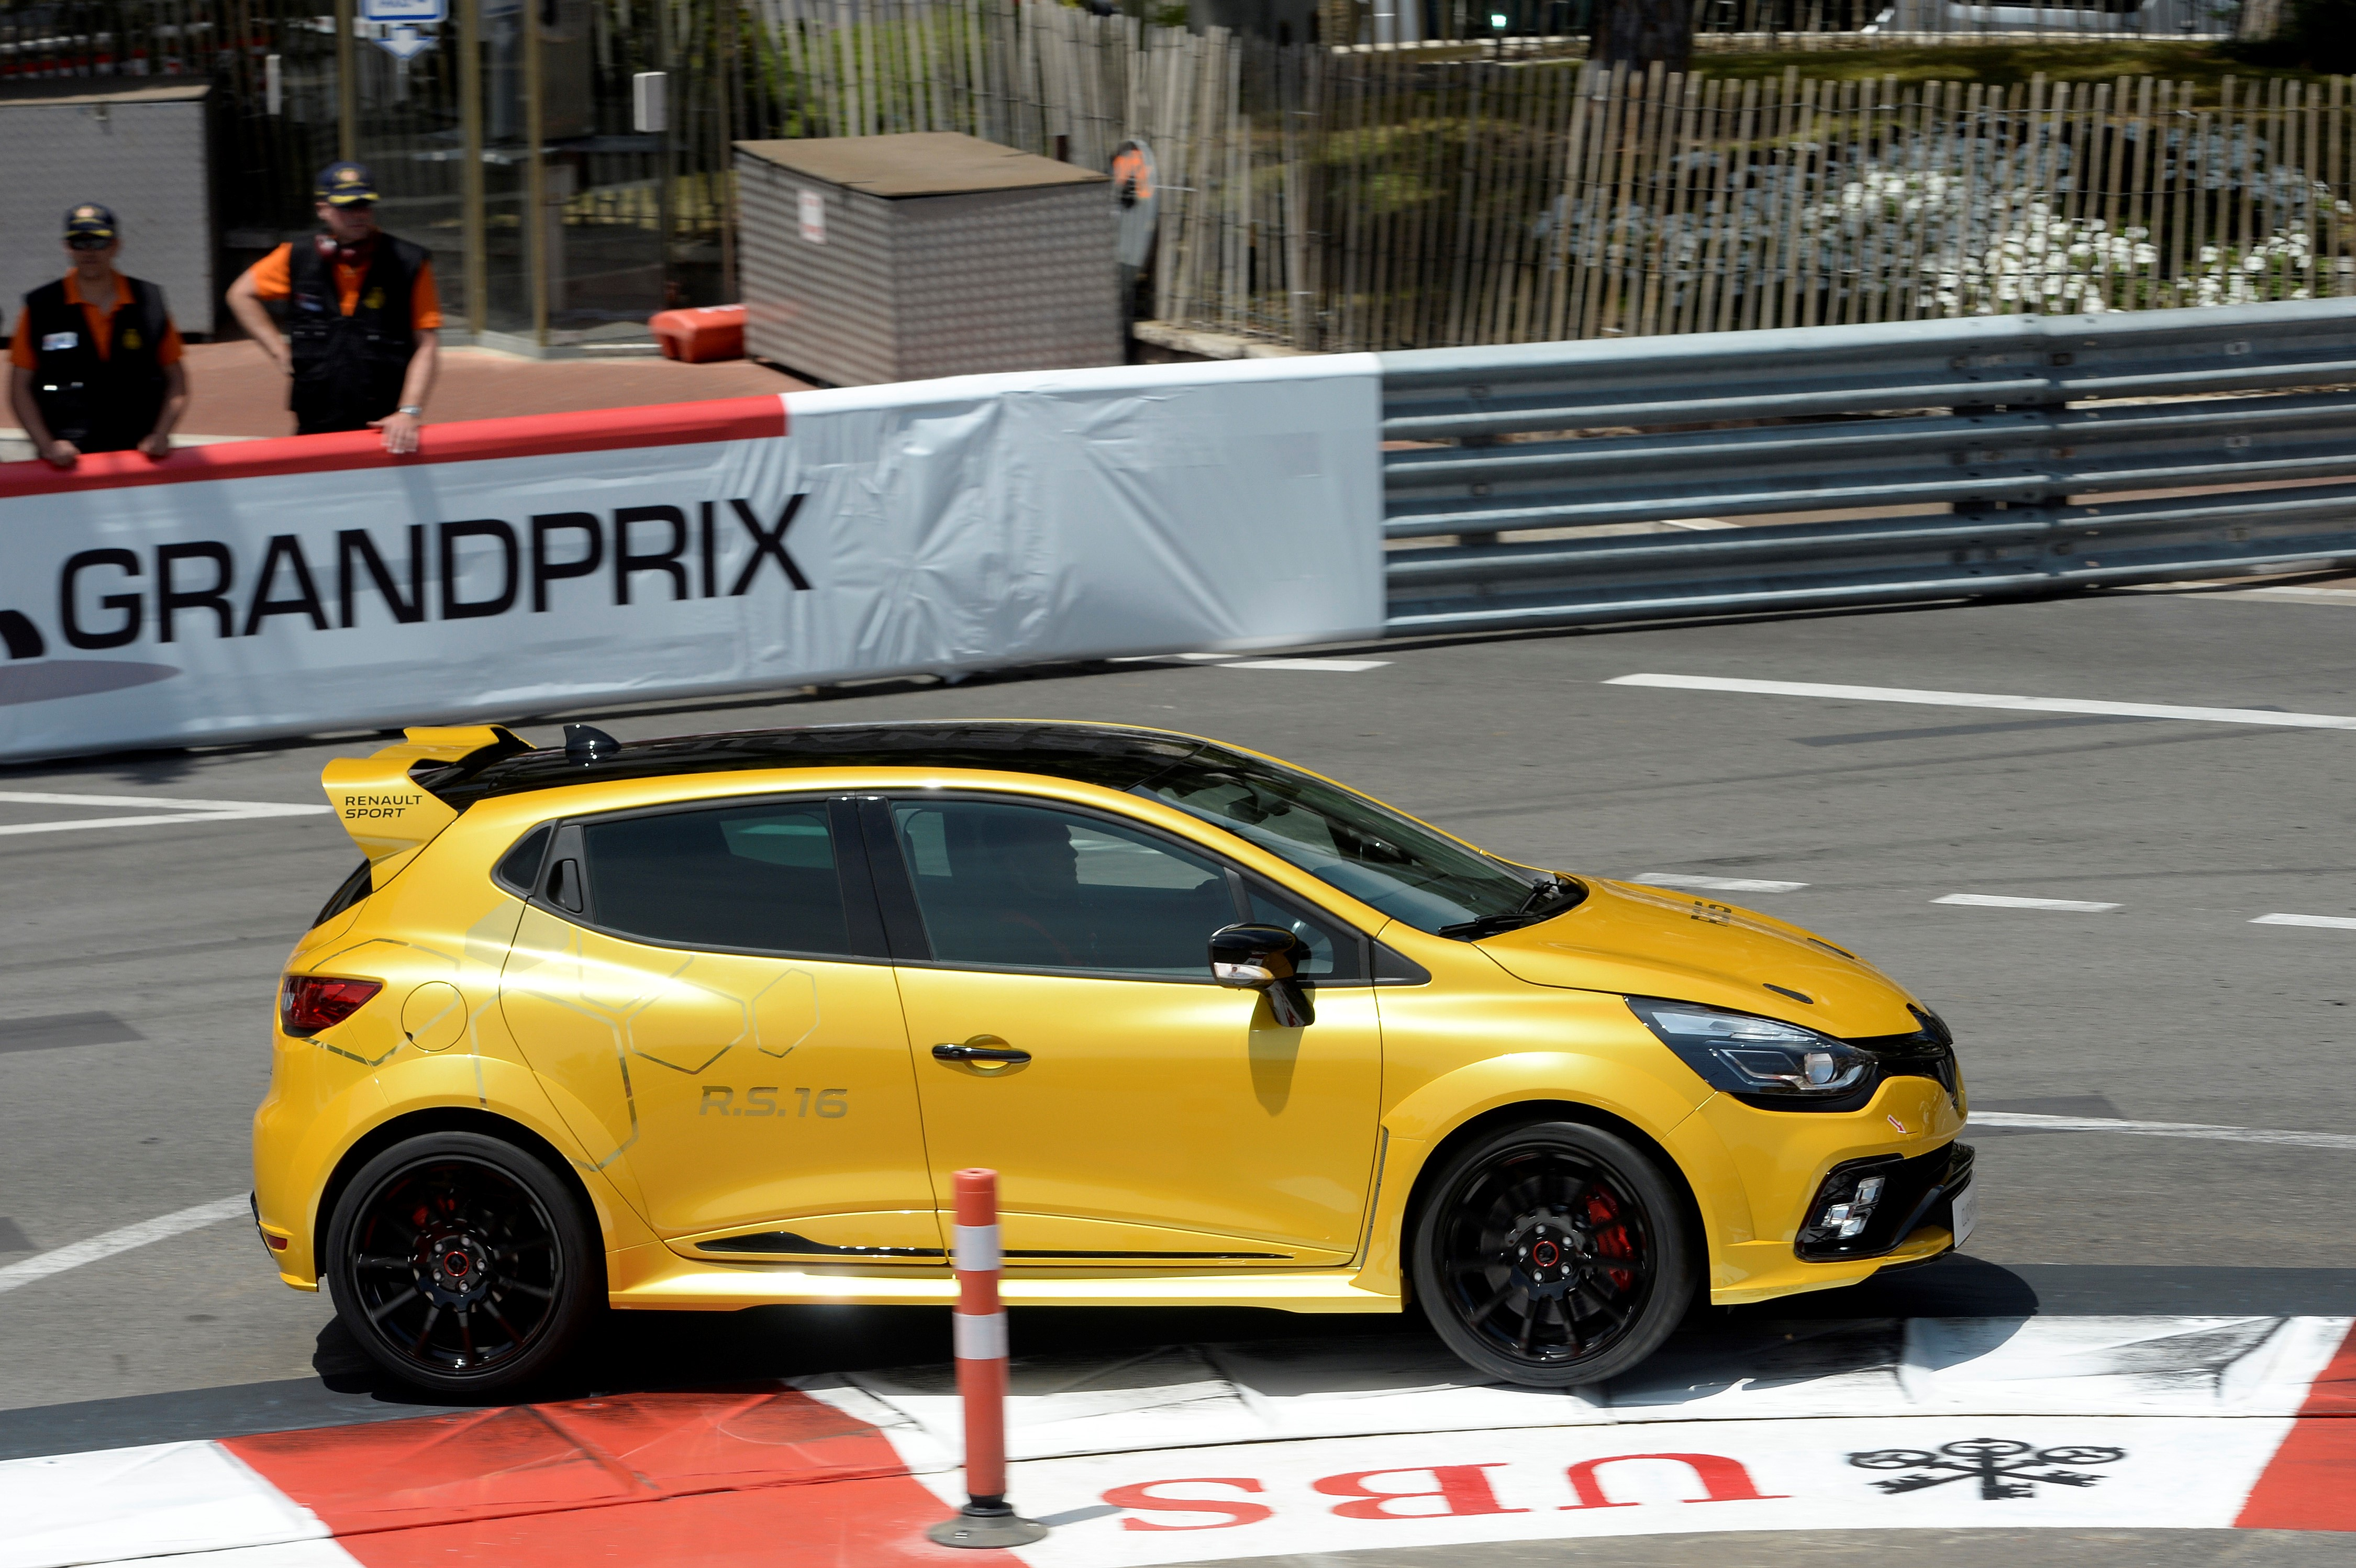 Renault Sport Clio RS16 na torze